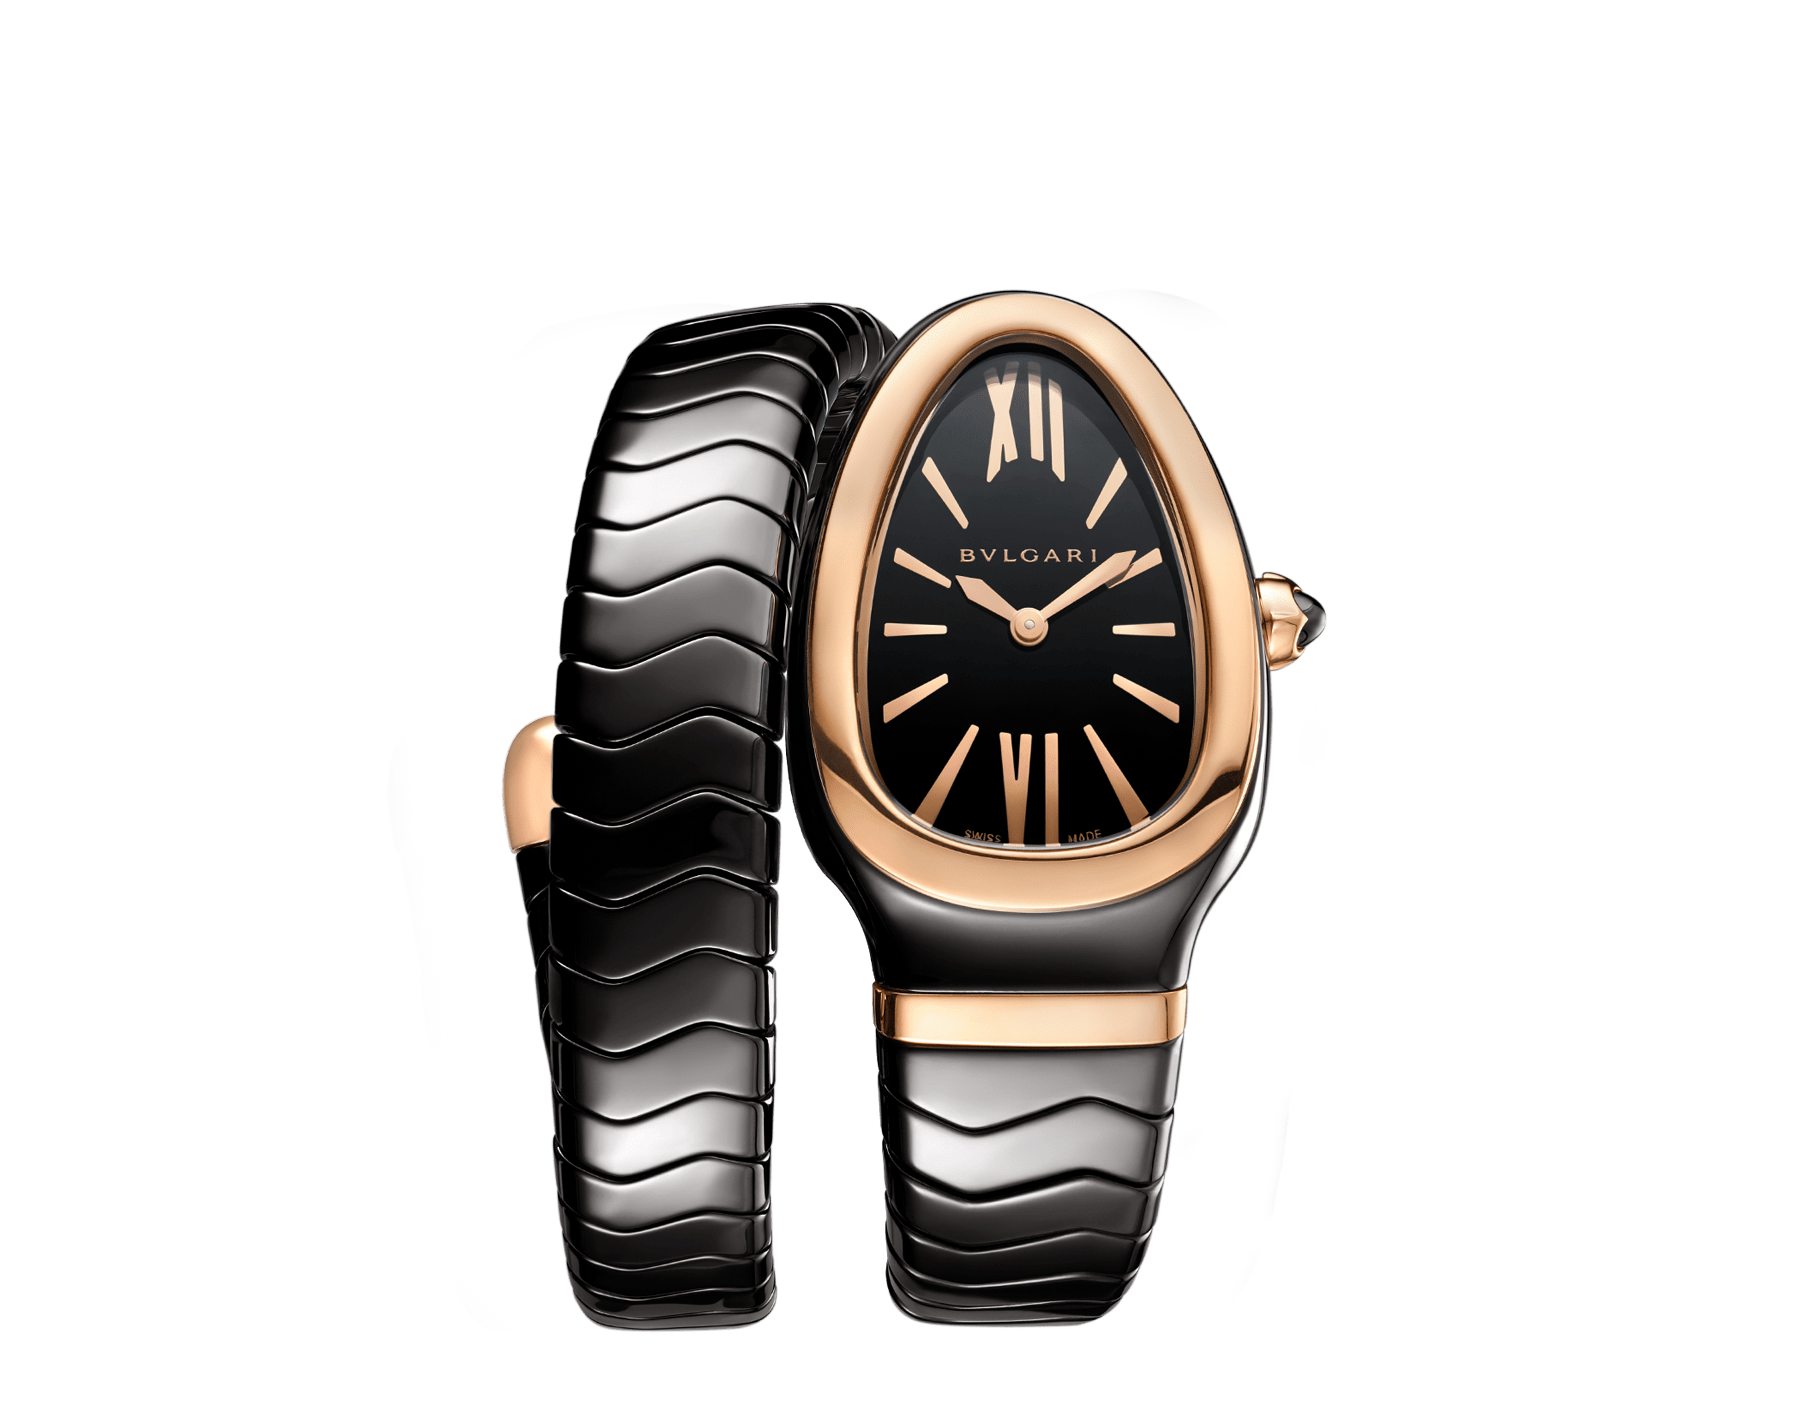 Serpenti Spiga single spiral watch with black ceramic case, 18 kt rose gold bezel, black lacquered dial and black ceramic bracelet set with 18 kt rose gold elements. 102735 image 1